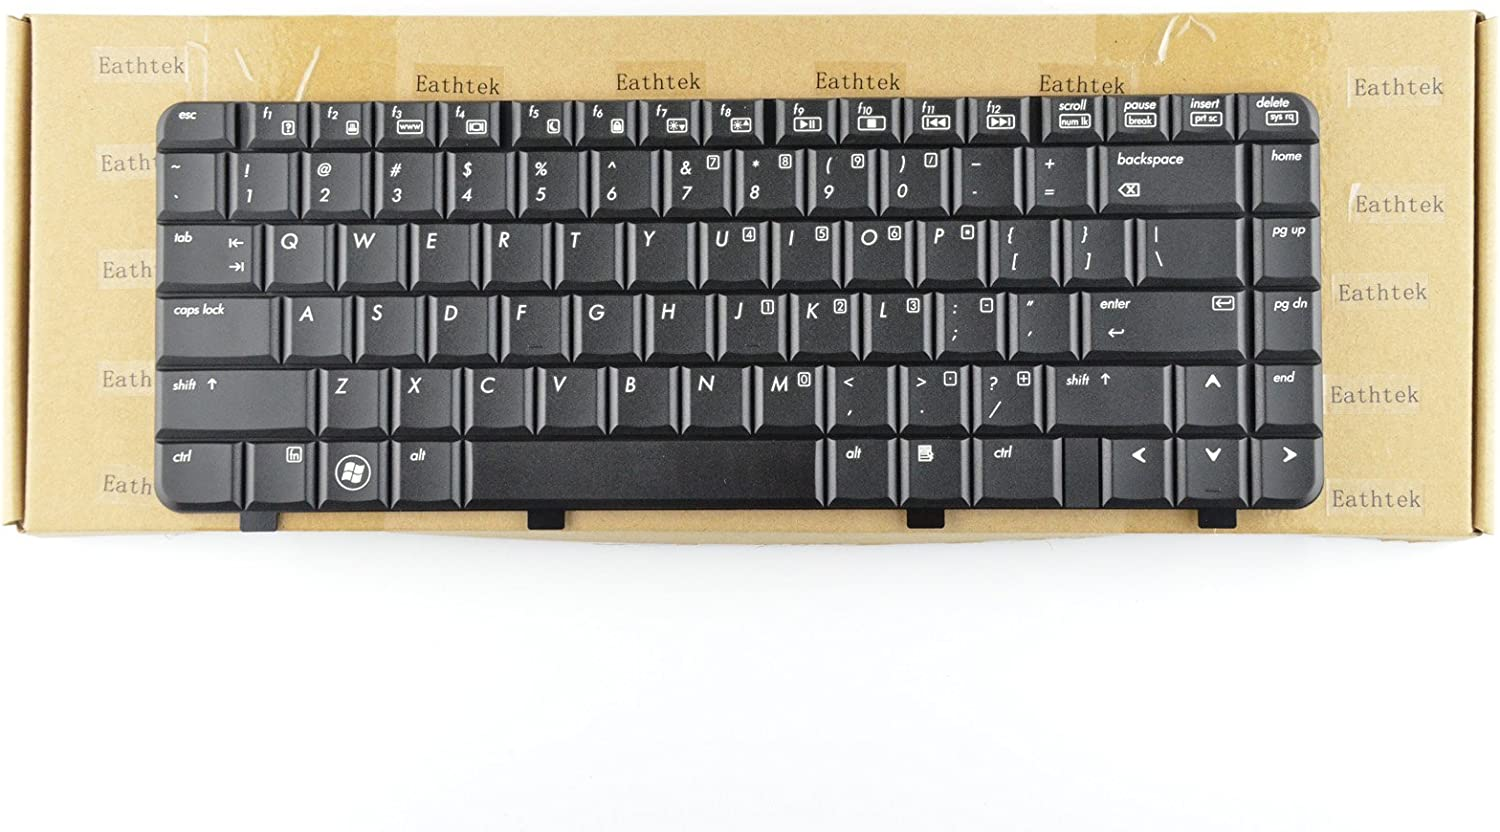 Eathtek Replacement Keyboard For HP Pavilion dv4 dv4-1000 DV4t-1400 CTO series Black US Layout, Compatible with part number 518793-001